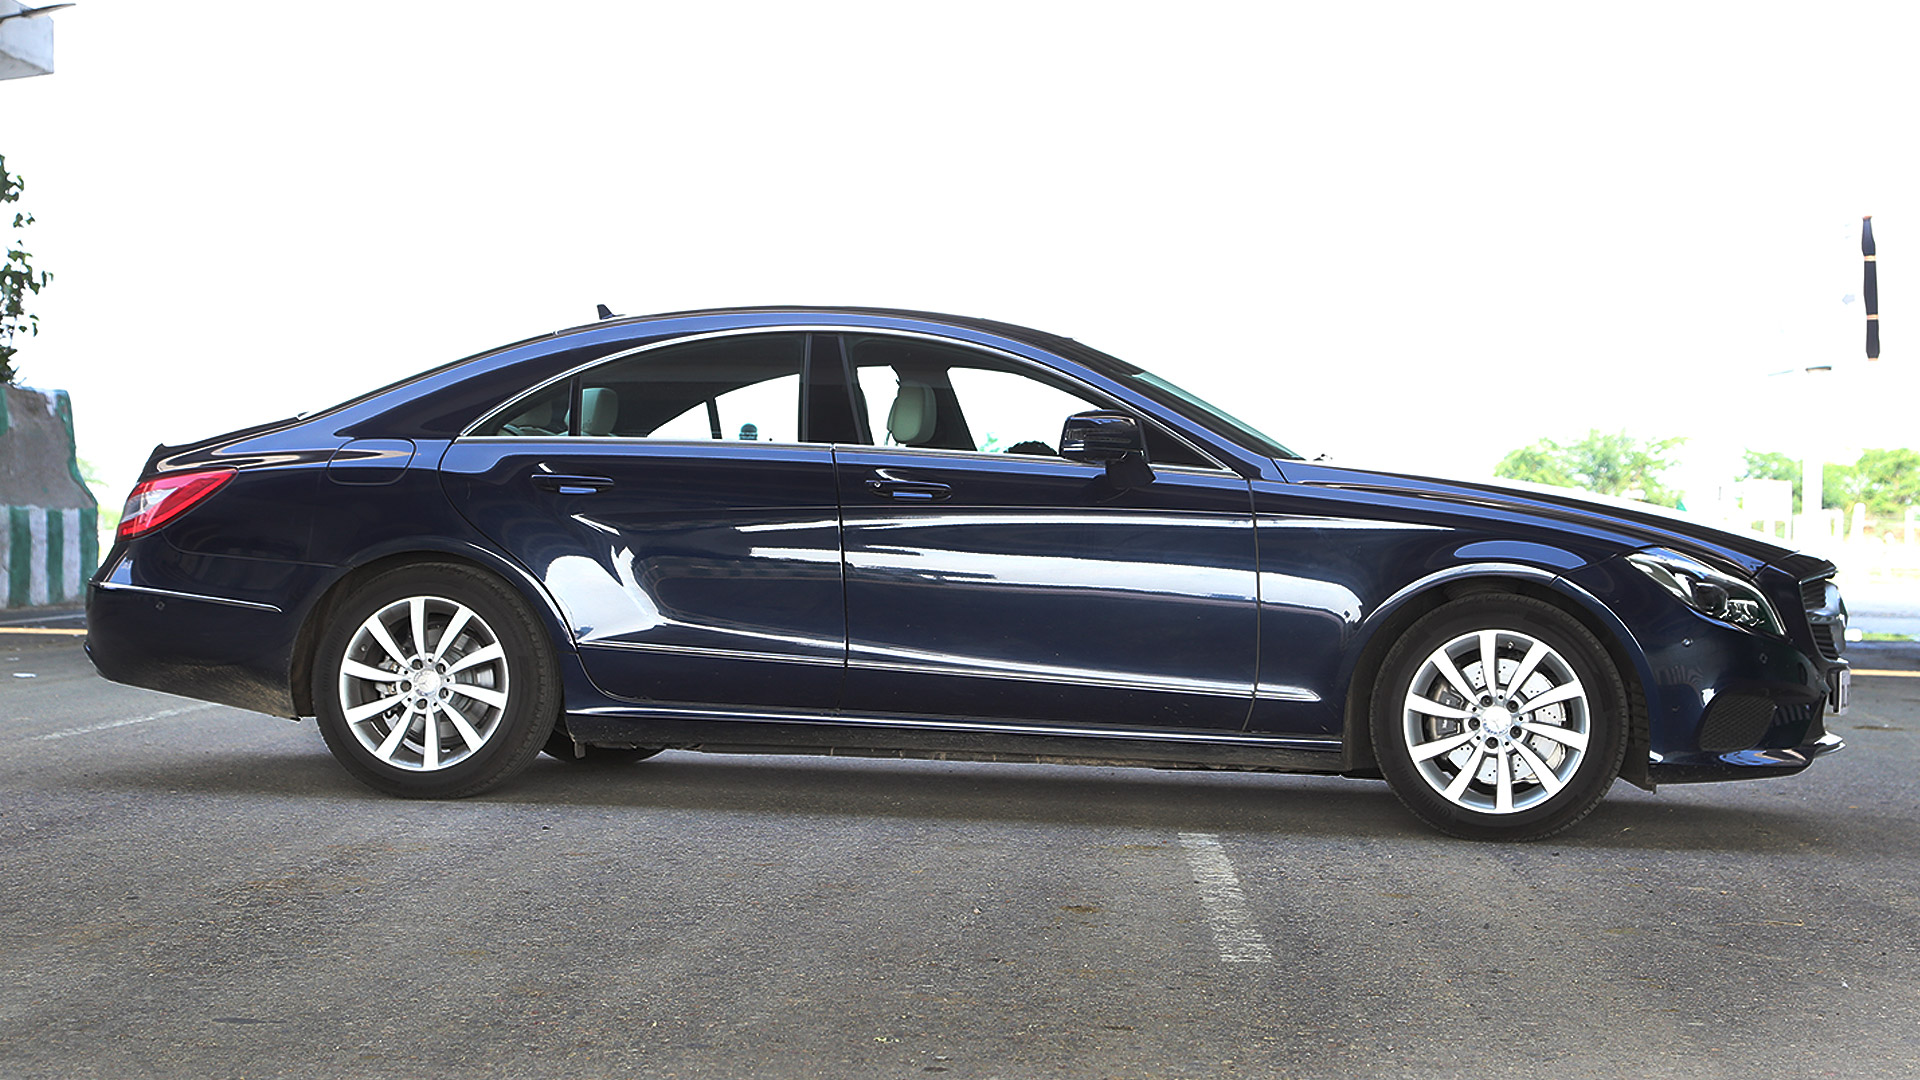 Mercedes benz cls 2015 250 cdi price mileage reviews for Mercedes benz cls 250 price